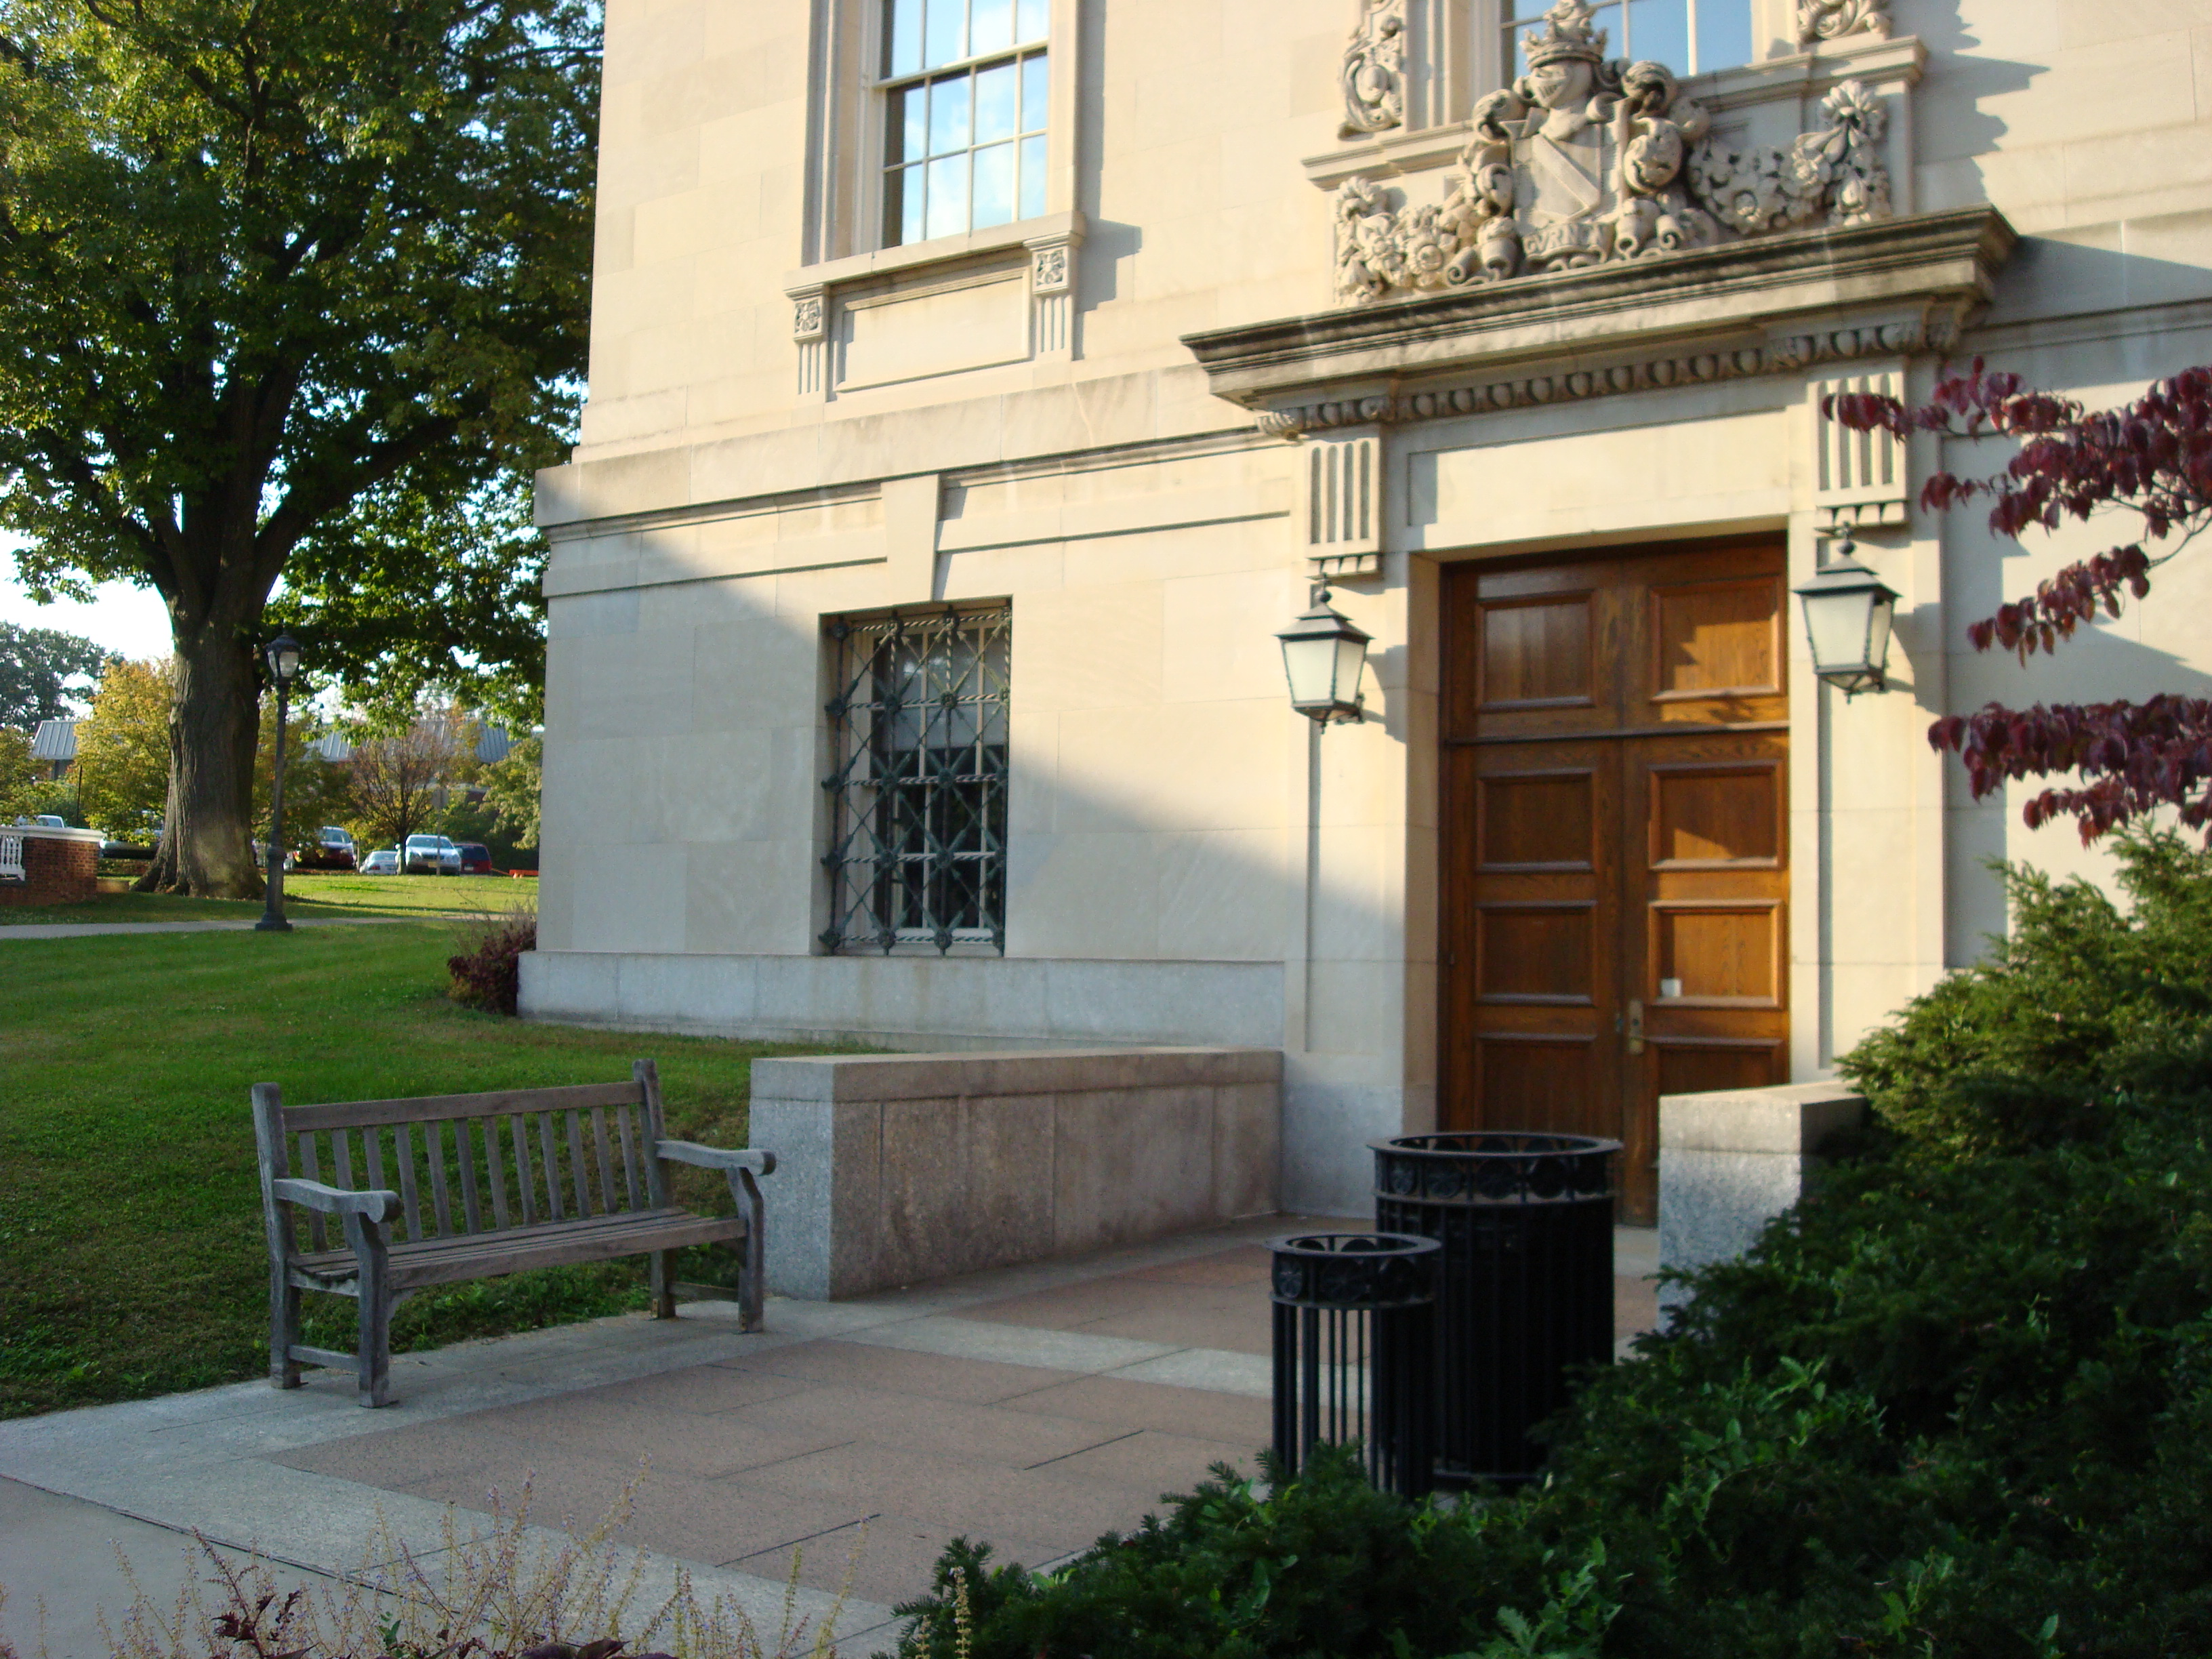 The side entrance to the Kirby Hall of Civil Rights, leading directly to the Meyner Center.